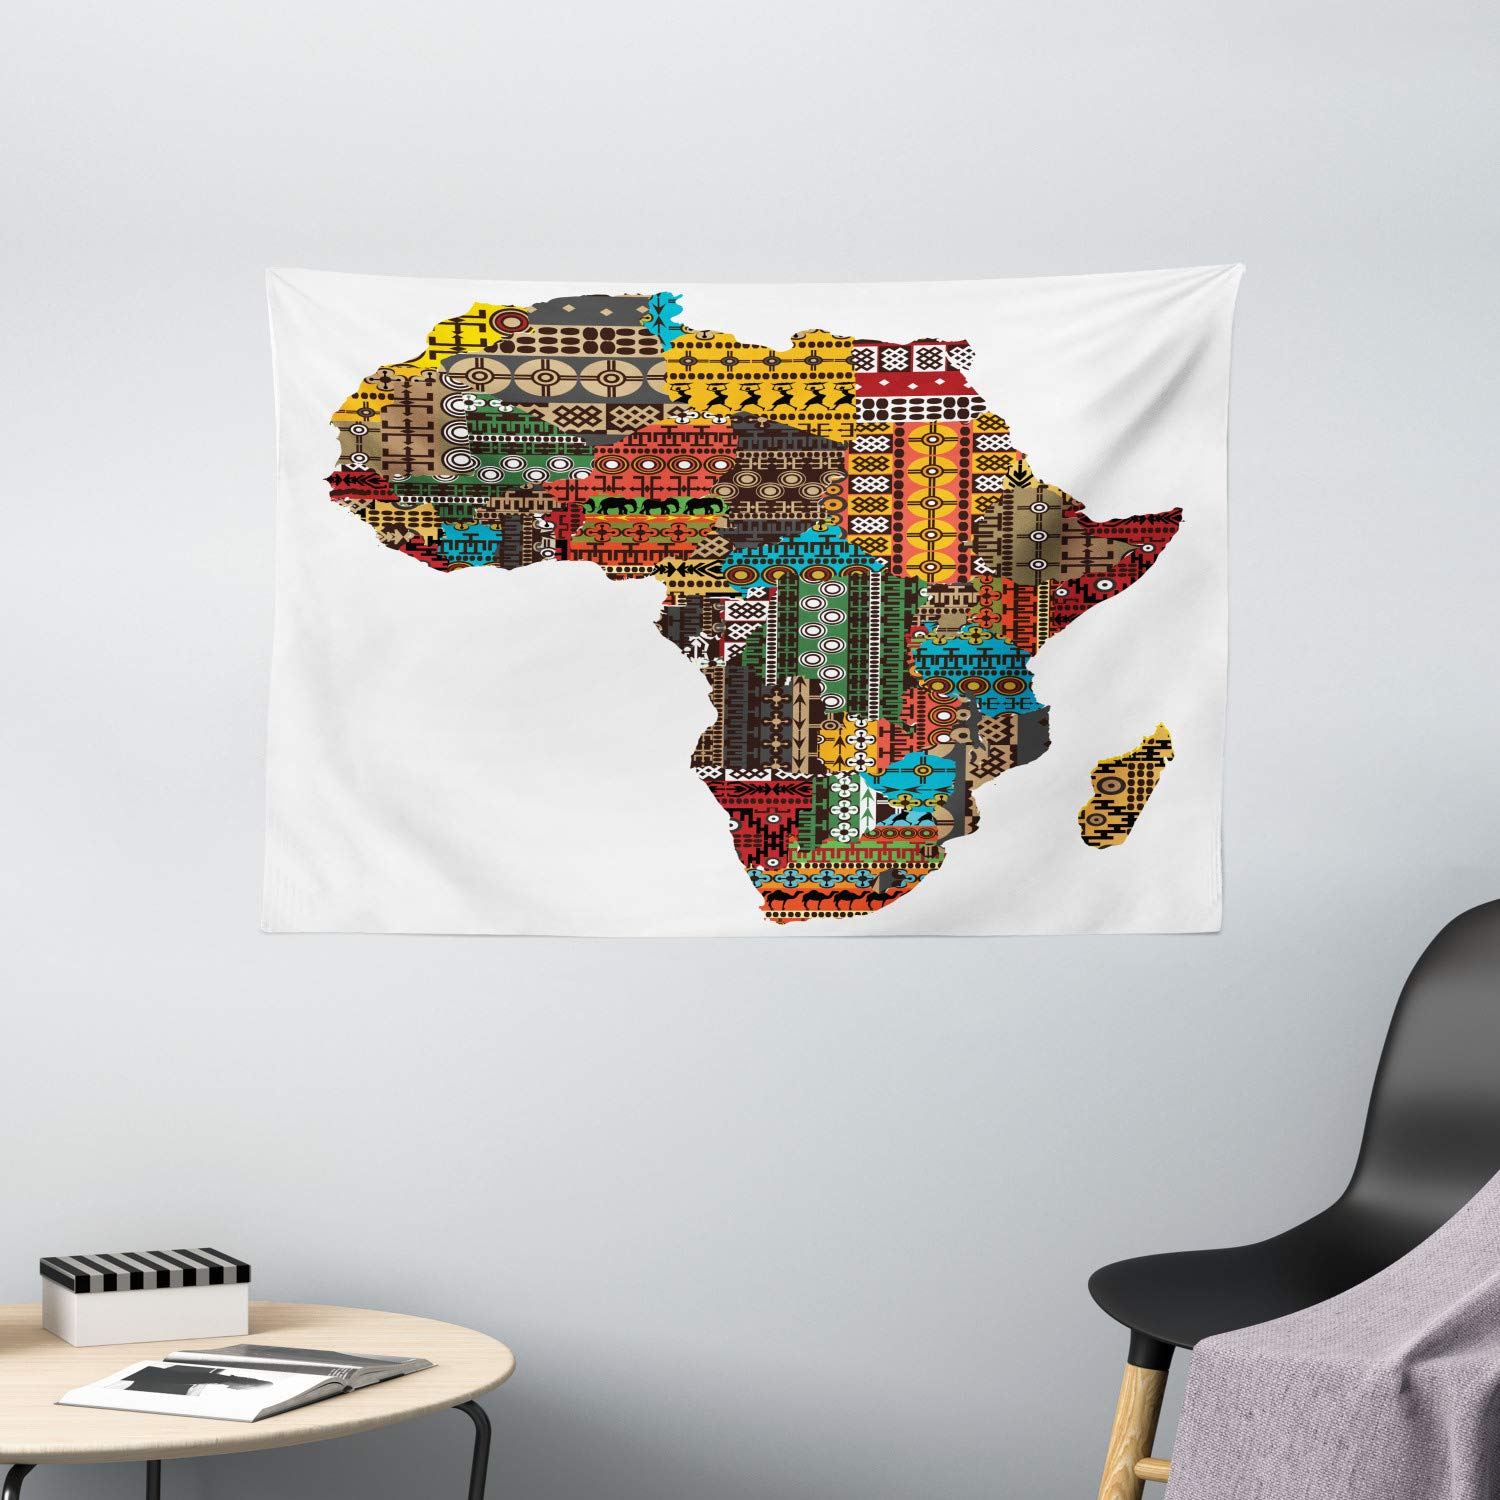 Multi Africa Map with Countries Made of Architectural Feature Popular Ancient Continent Art 80 X 60 Inches Ambesonne African Decorations Collection Bedroom Living Room Dorm Wall Hanging Tapestry